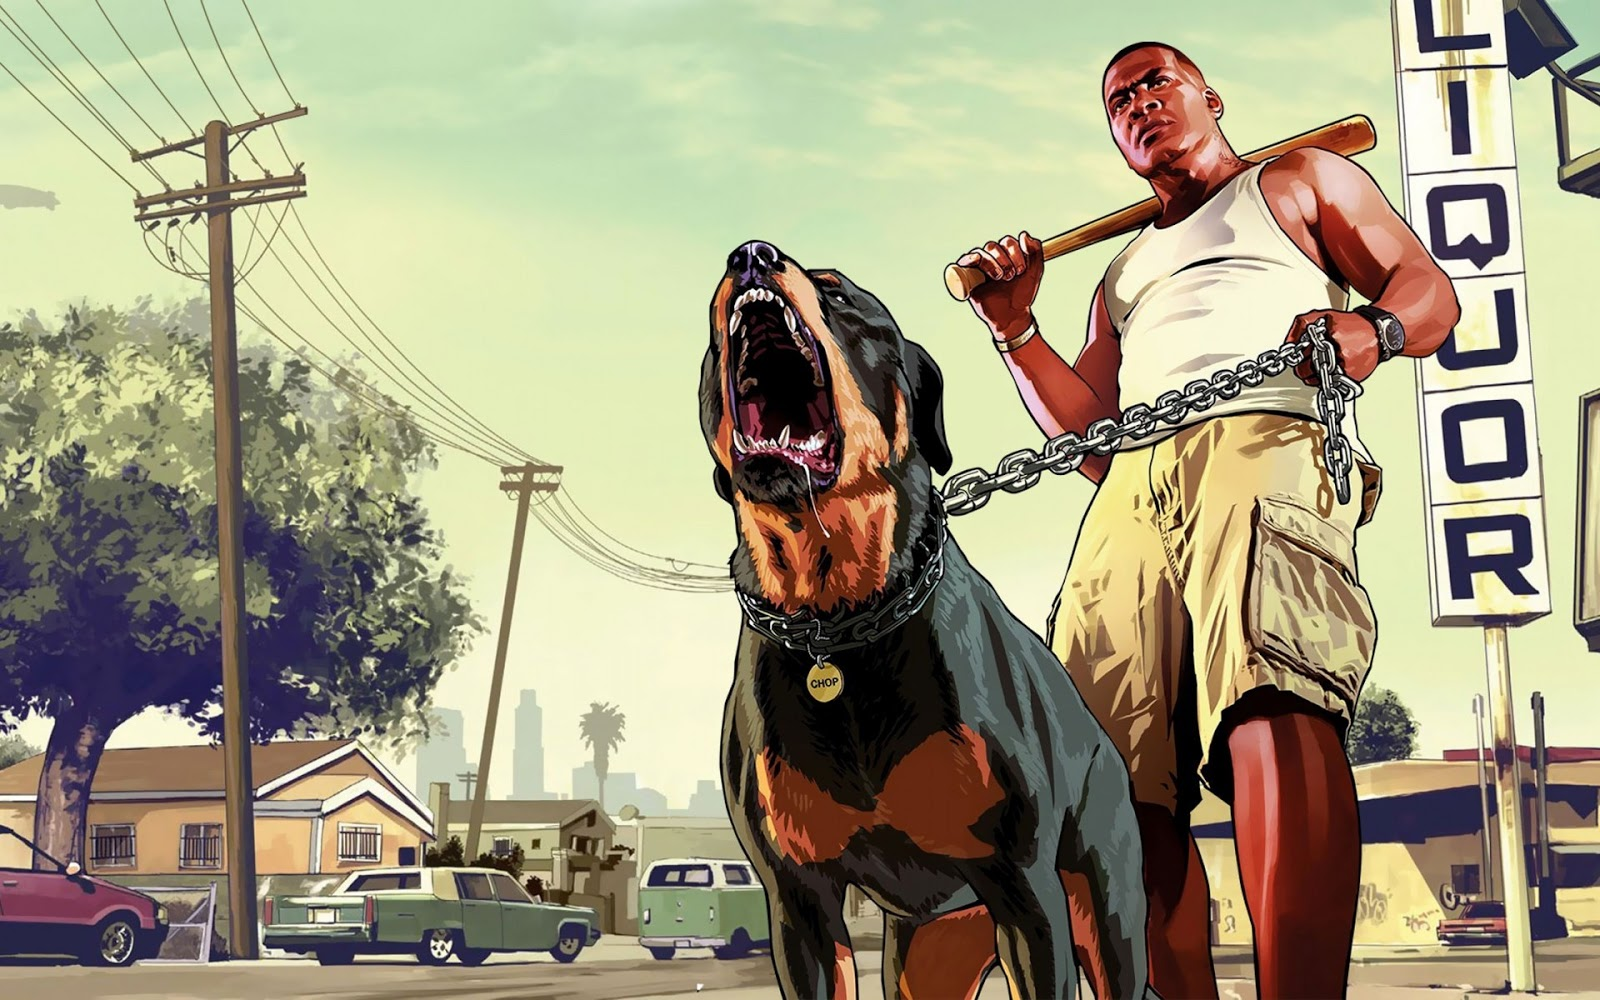 A Mix Of Gta Grand Theft Auto Wallpapers C Town Gaming X